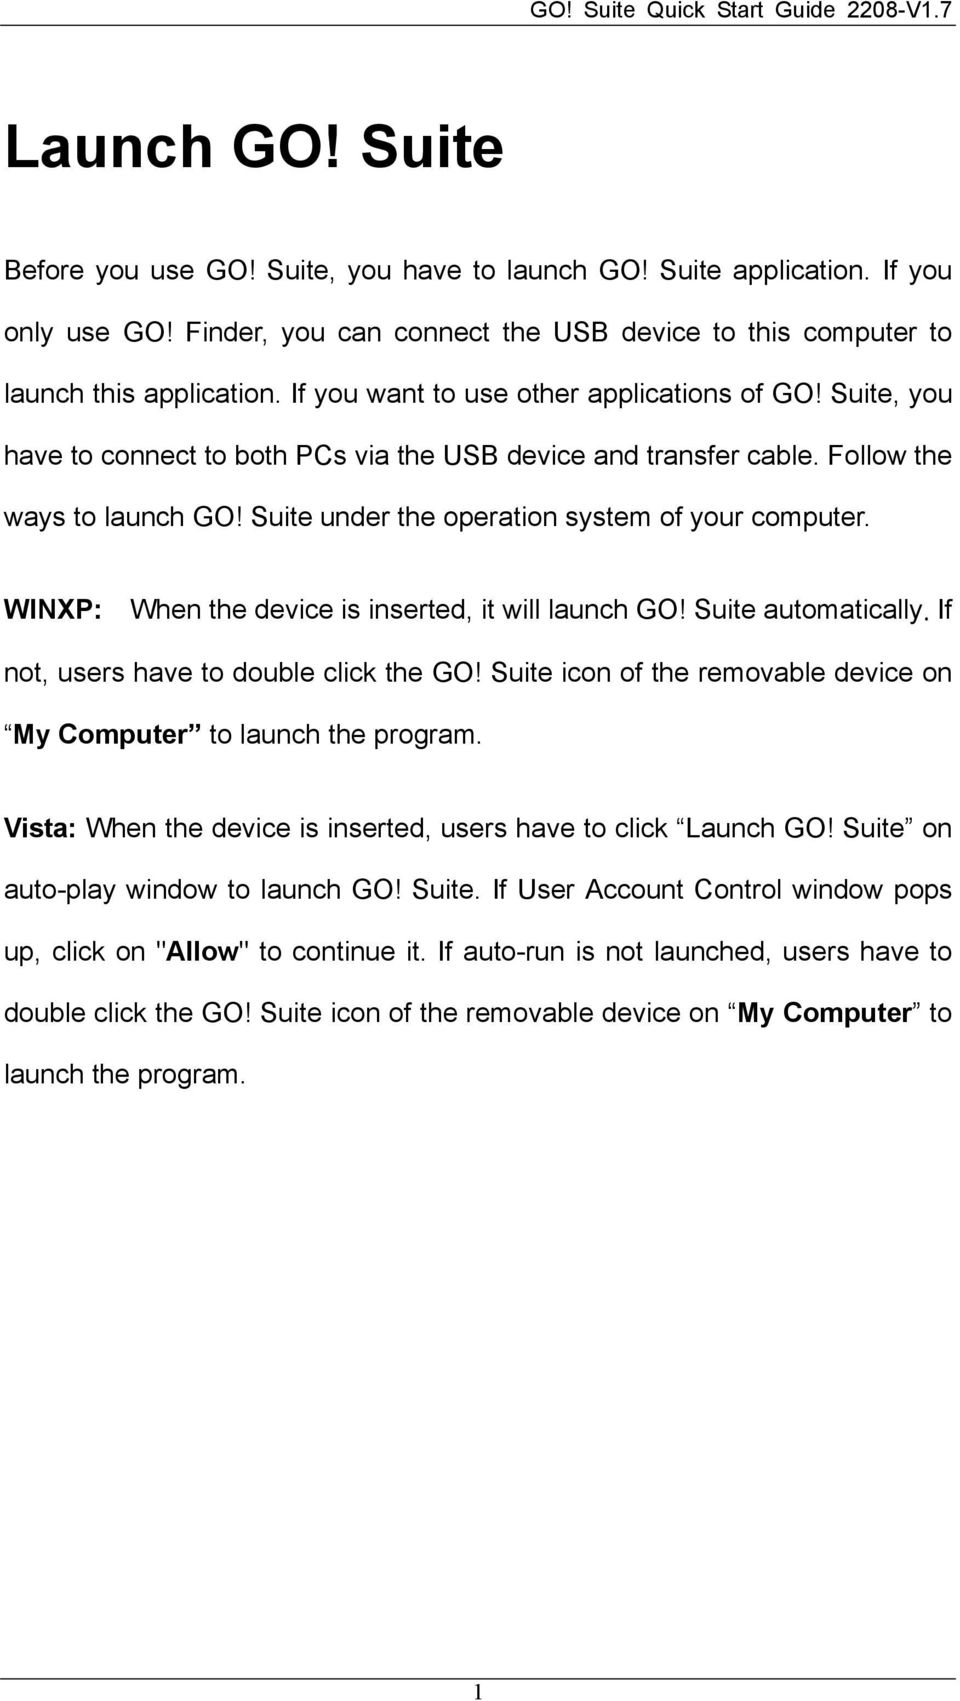 Suite, you have to connect to both PCs via the USB device and transfer cable. Follow the ways to launch GO! Suite under the operation system of your computer.